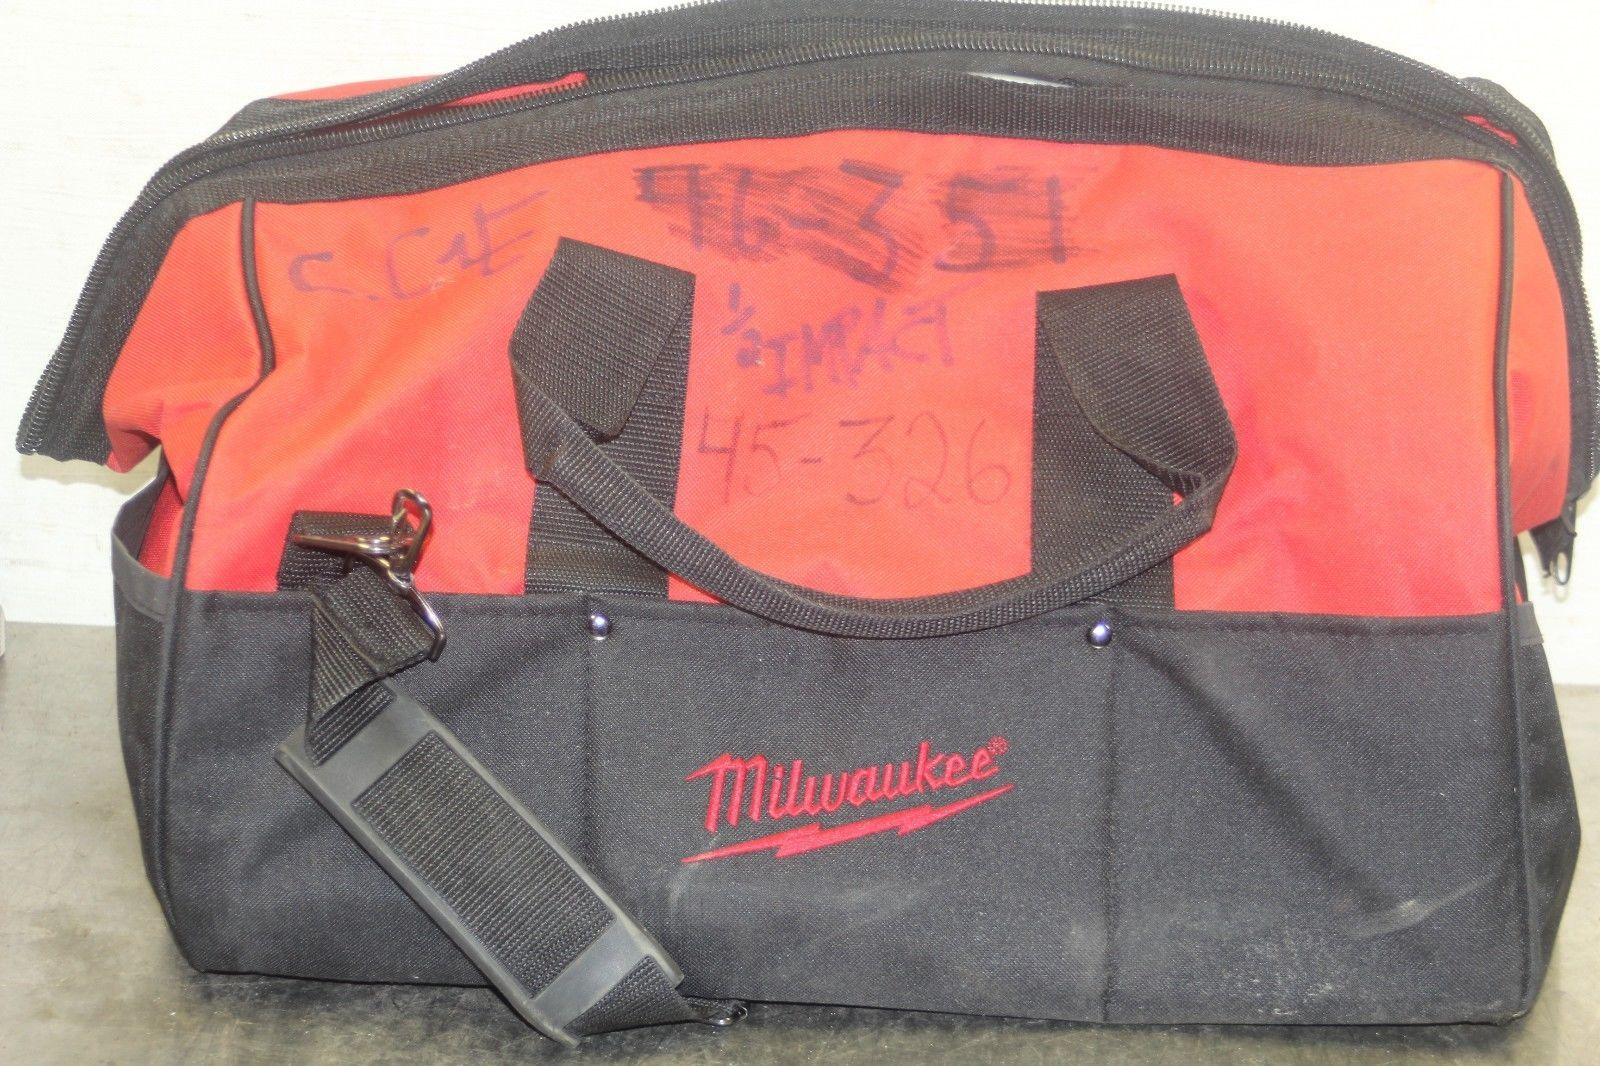 Primary image for Milwaukee Contractor Bag 48-55-3510